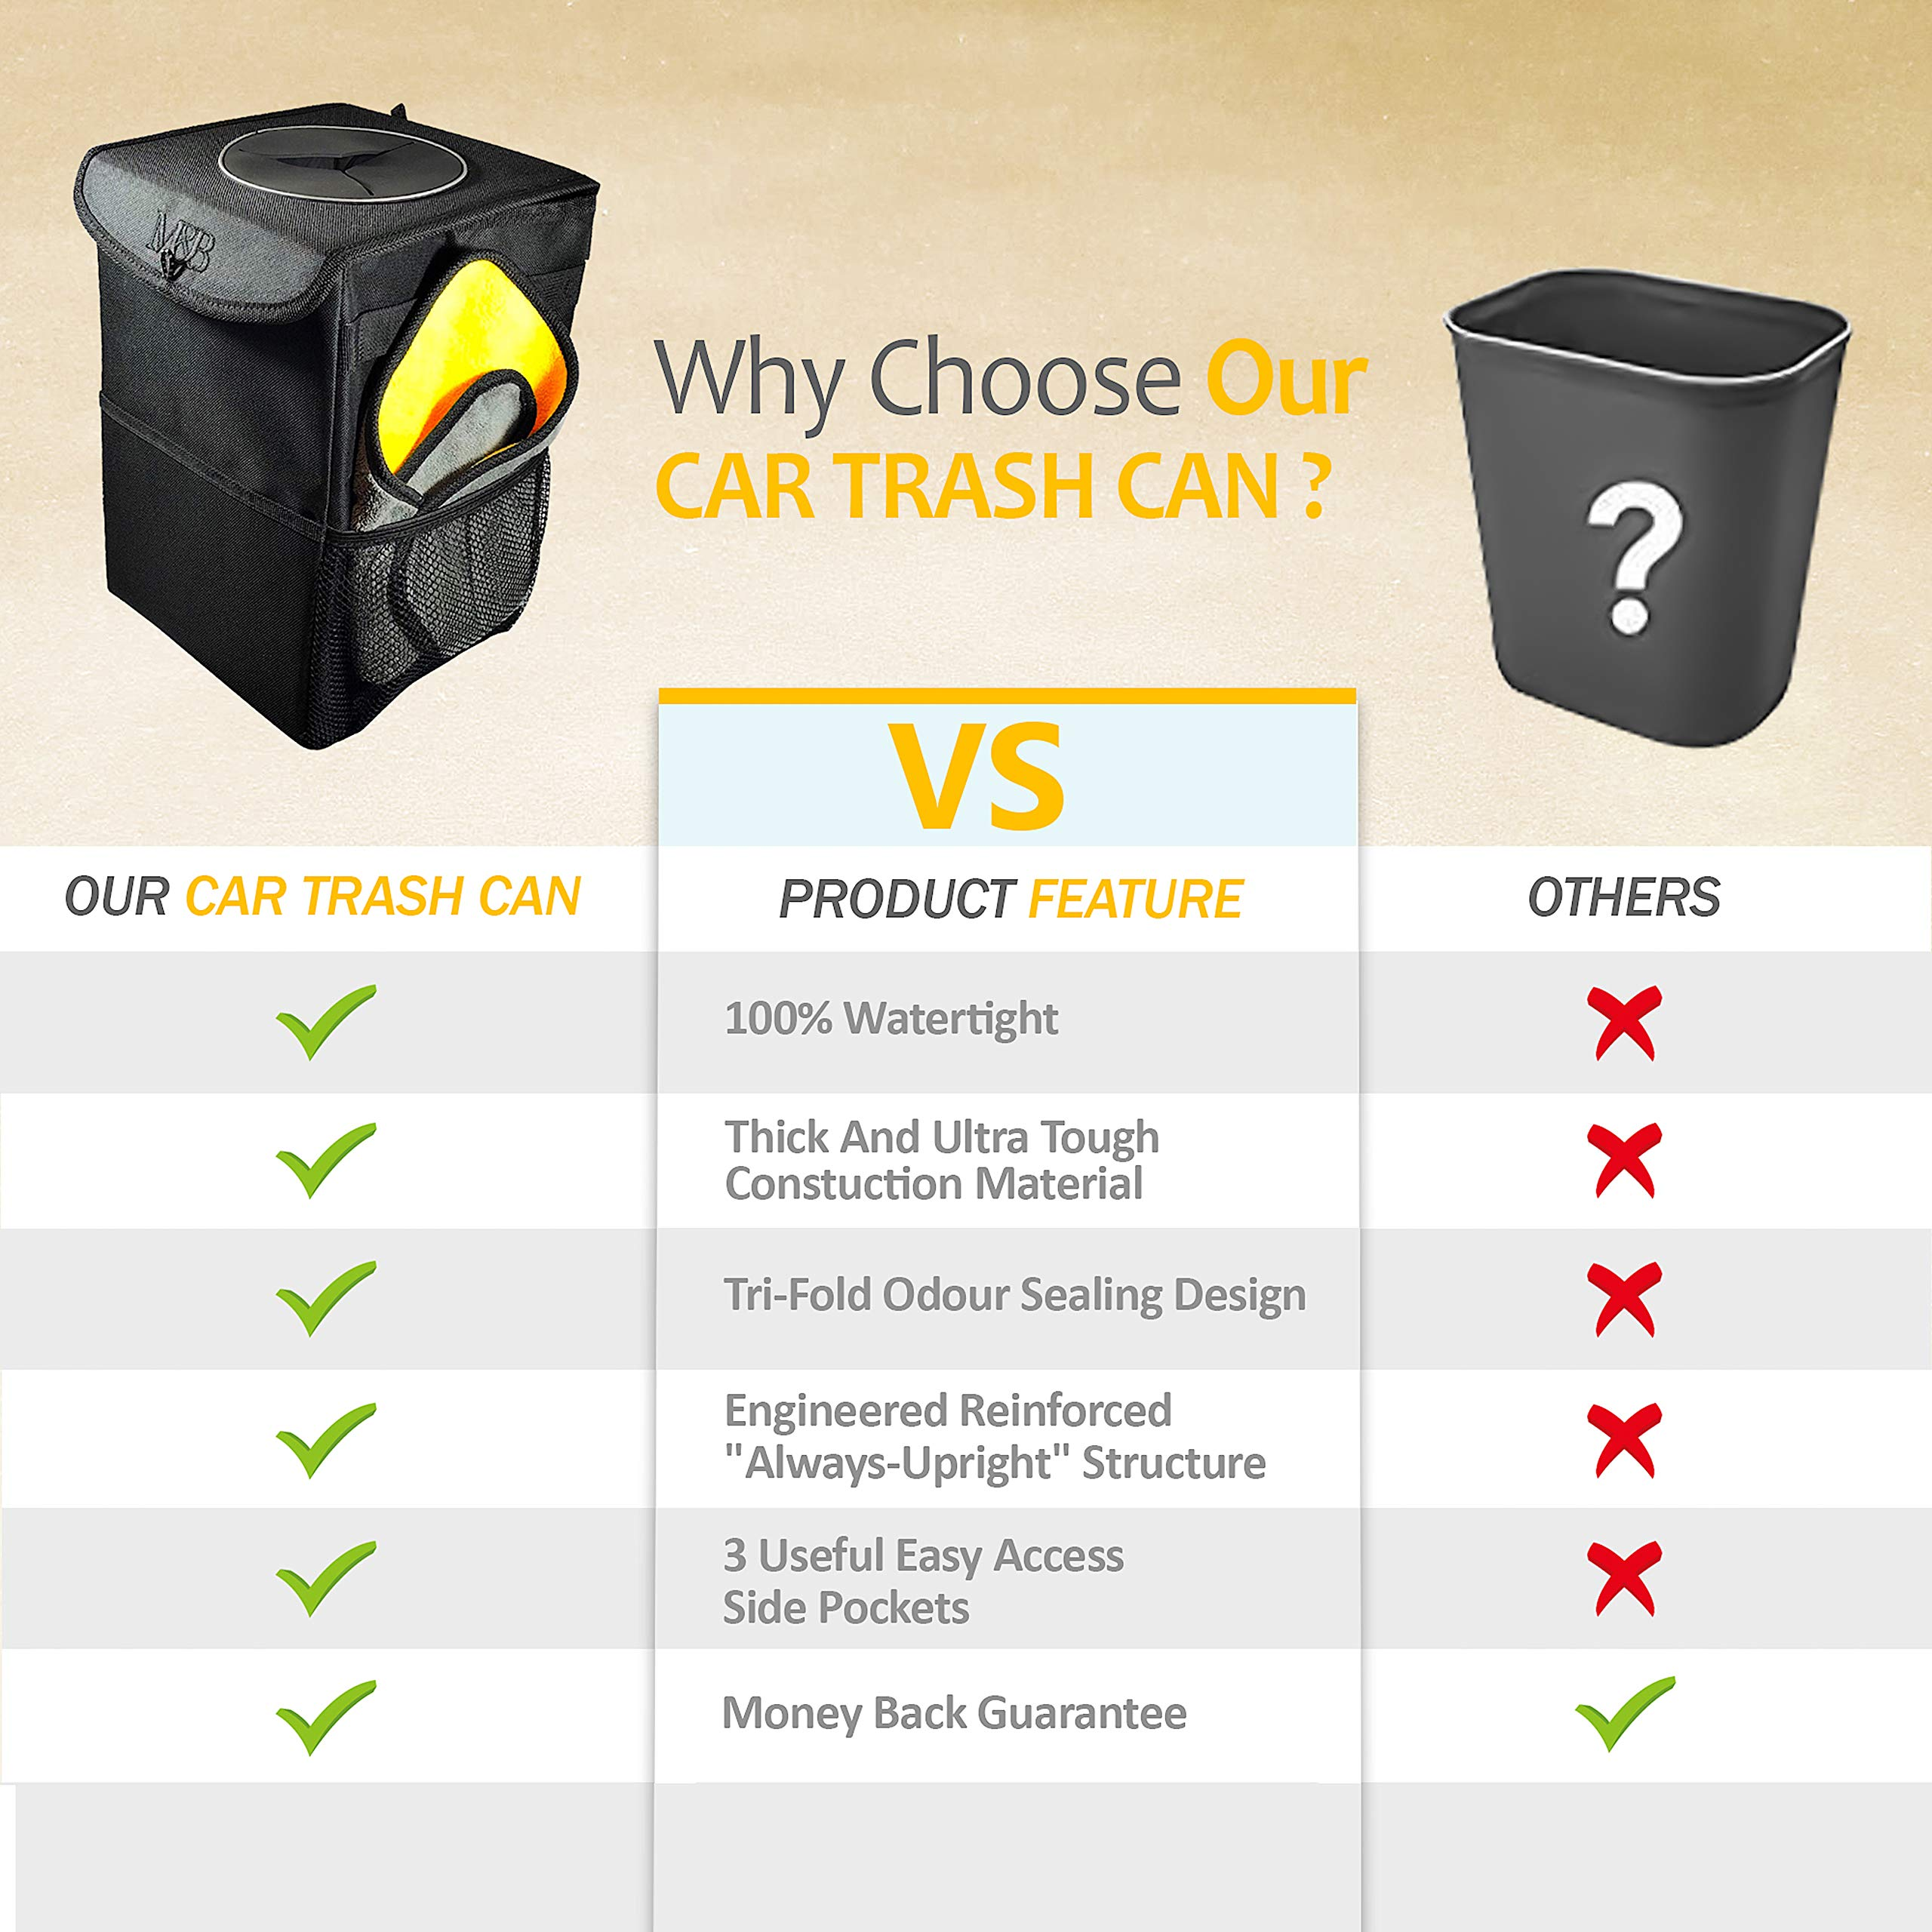 Car Trash Can - The Luxury Edition. No-Smell, Premium Leak Proof Construction & Watertight Liner Won't Cave, Spill, Tip or Contaminate Vehicle Guaranteed | Cleaning Cloth & 30 Disposable Liners by MB Innovations Group (Image #10)